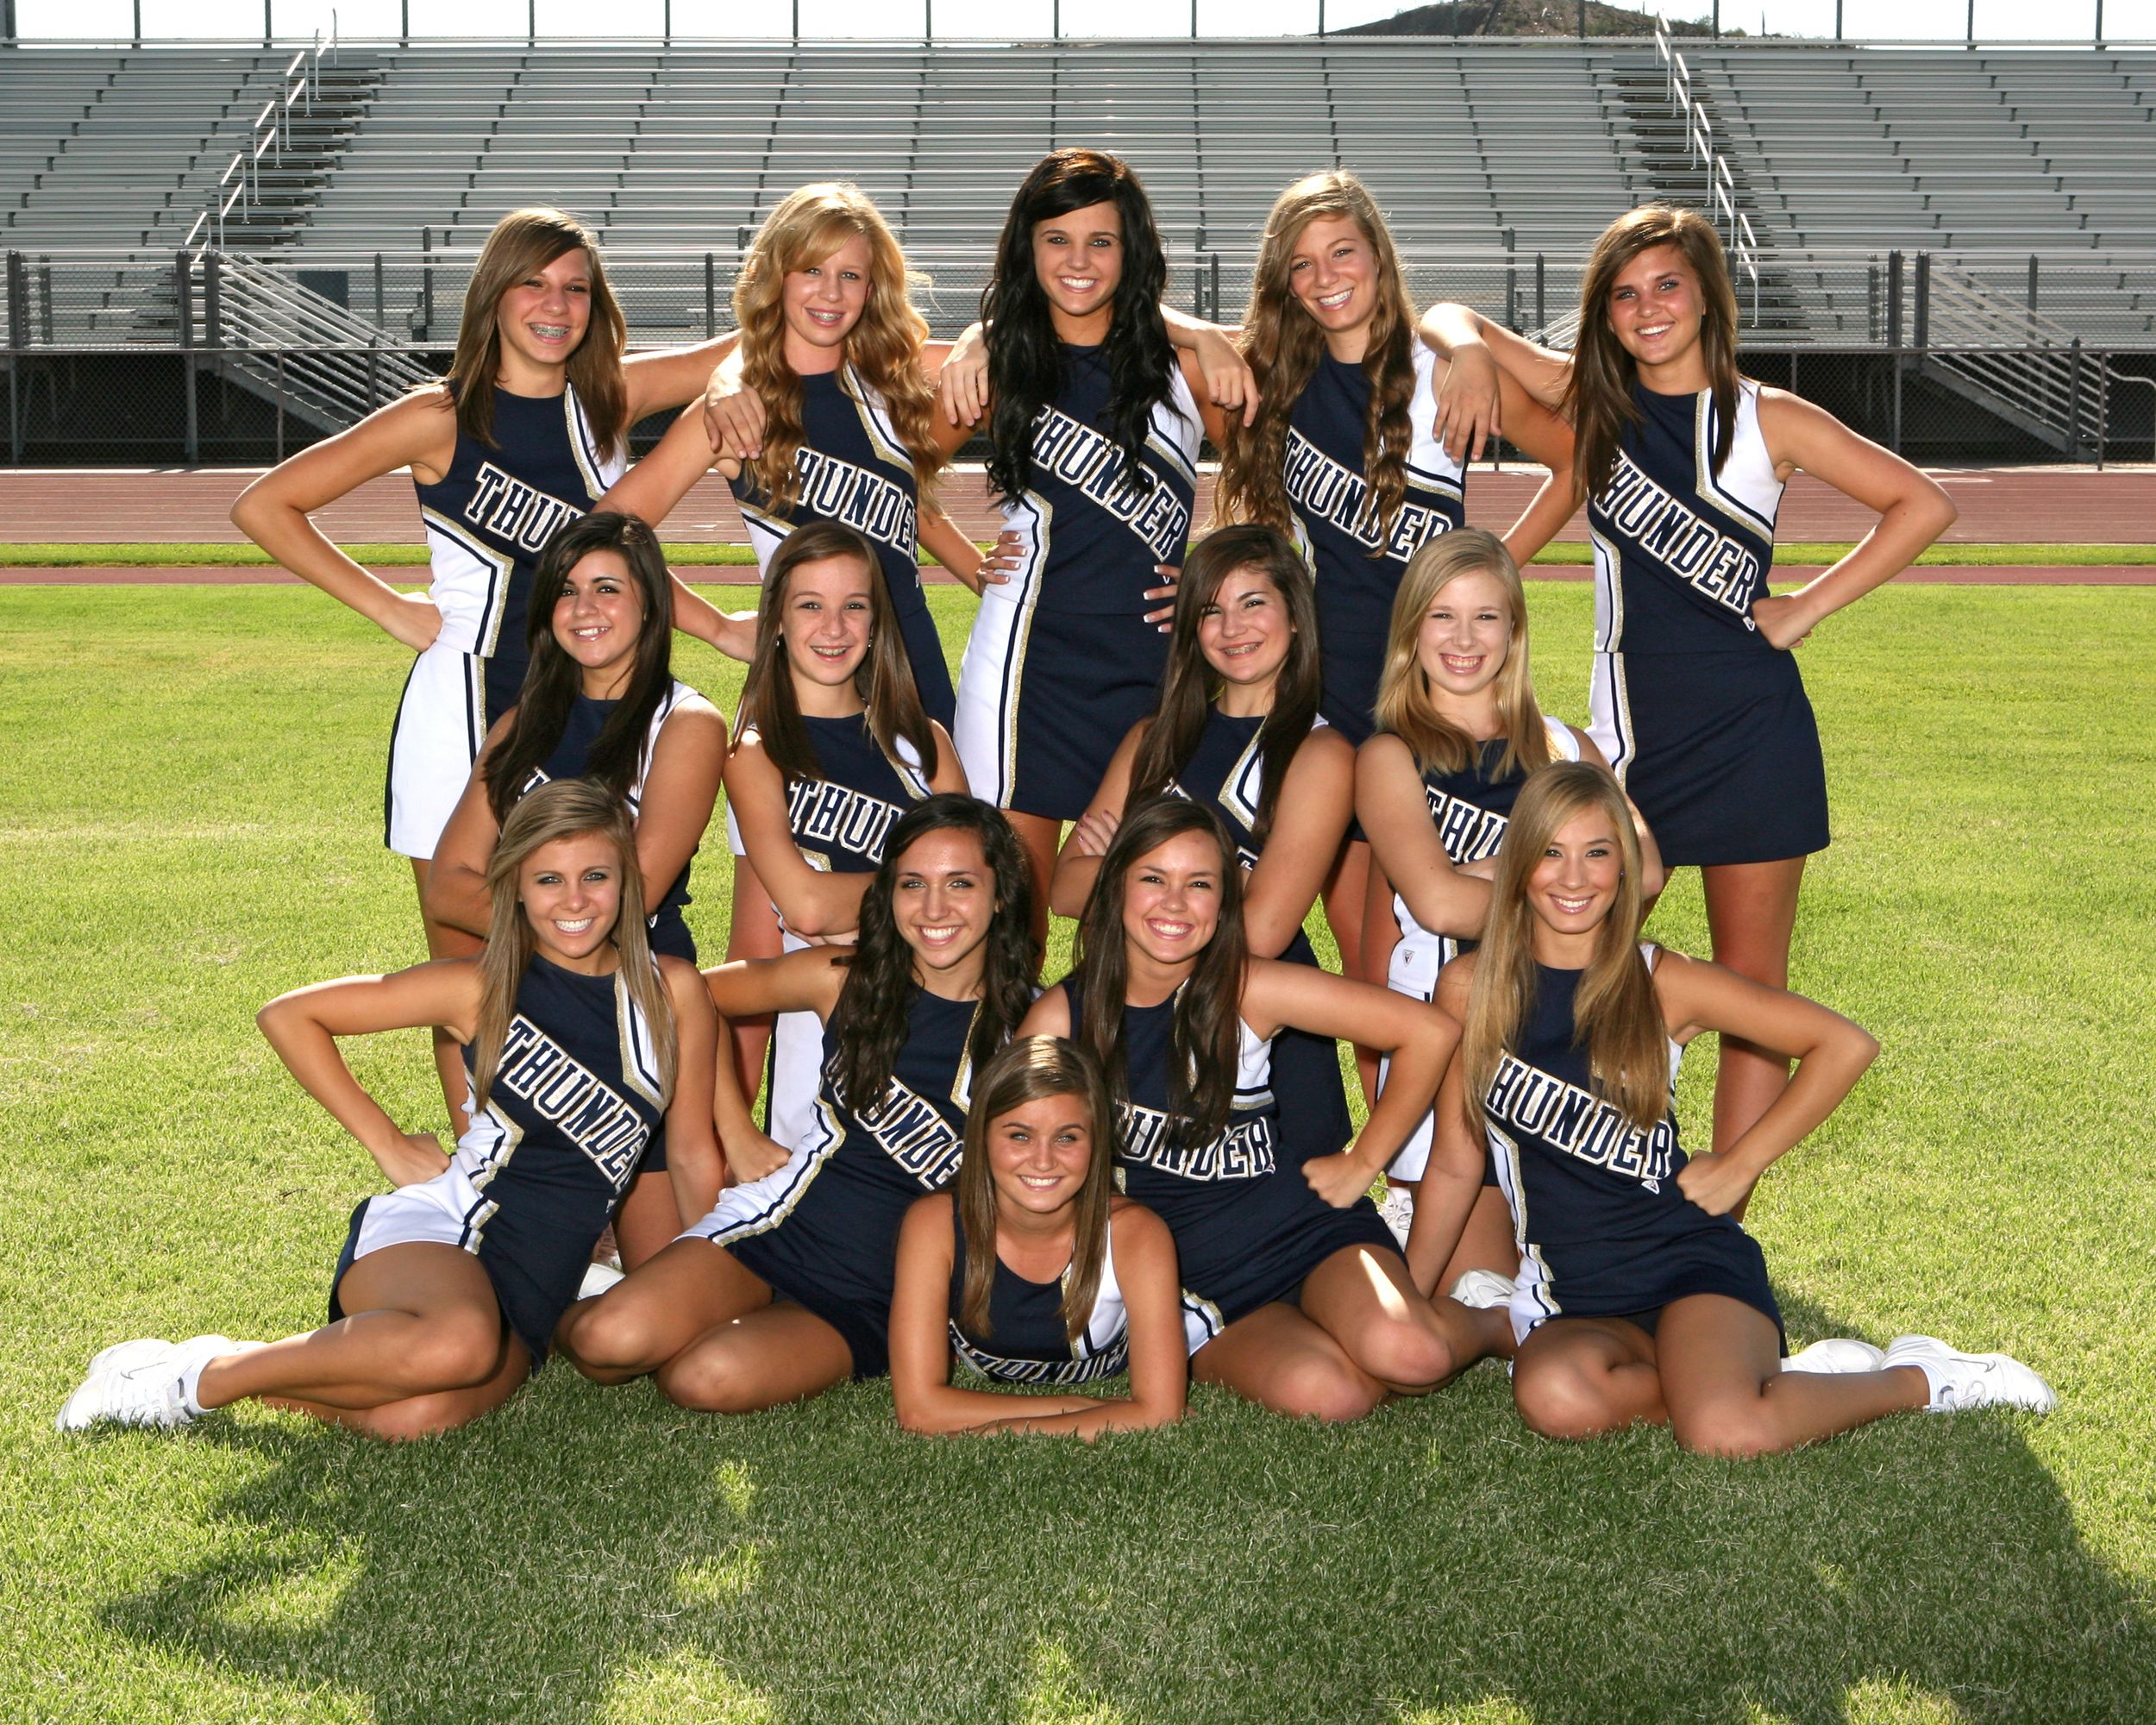 Cheer Team Pictures Jv Cheer Jv Photohome Cheer Team Cheer